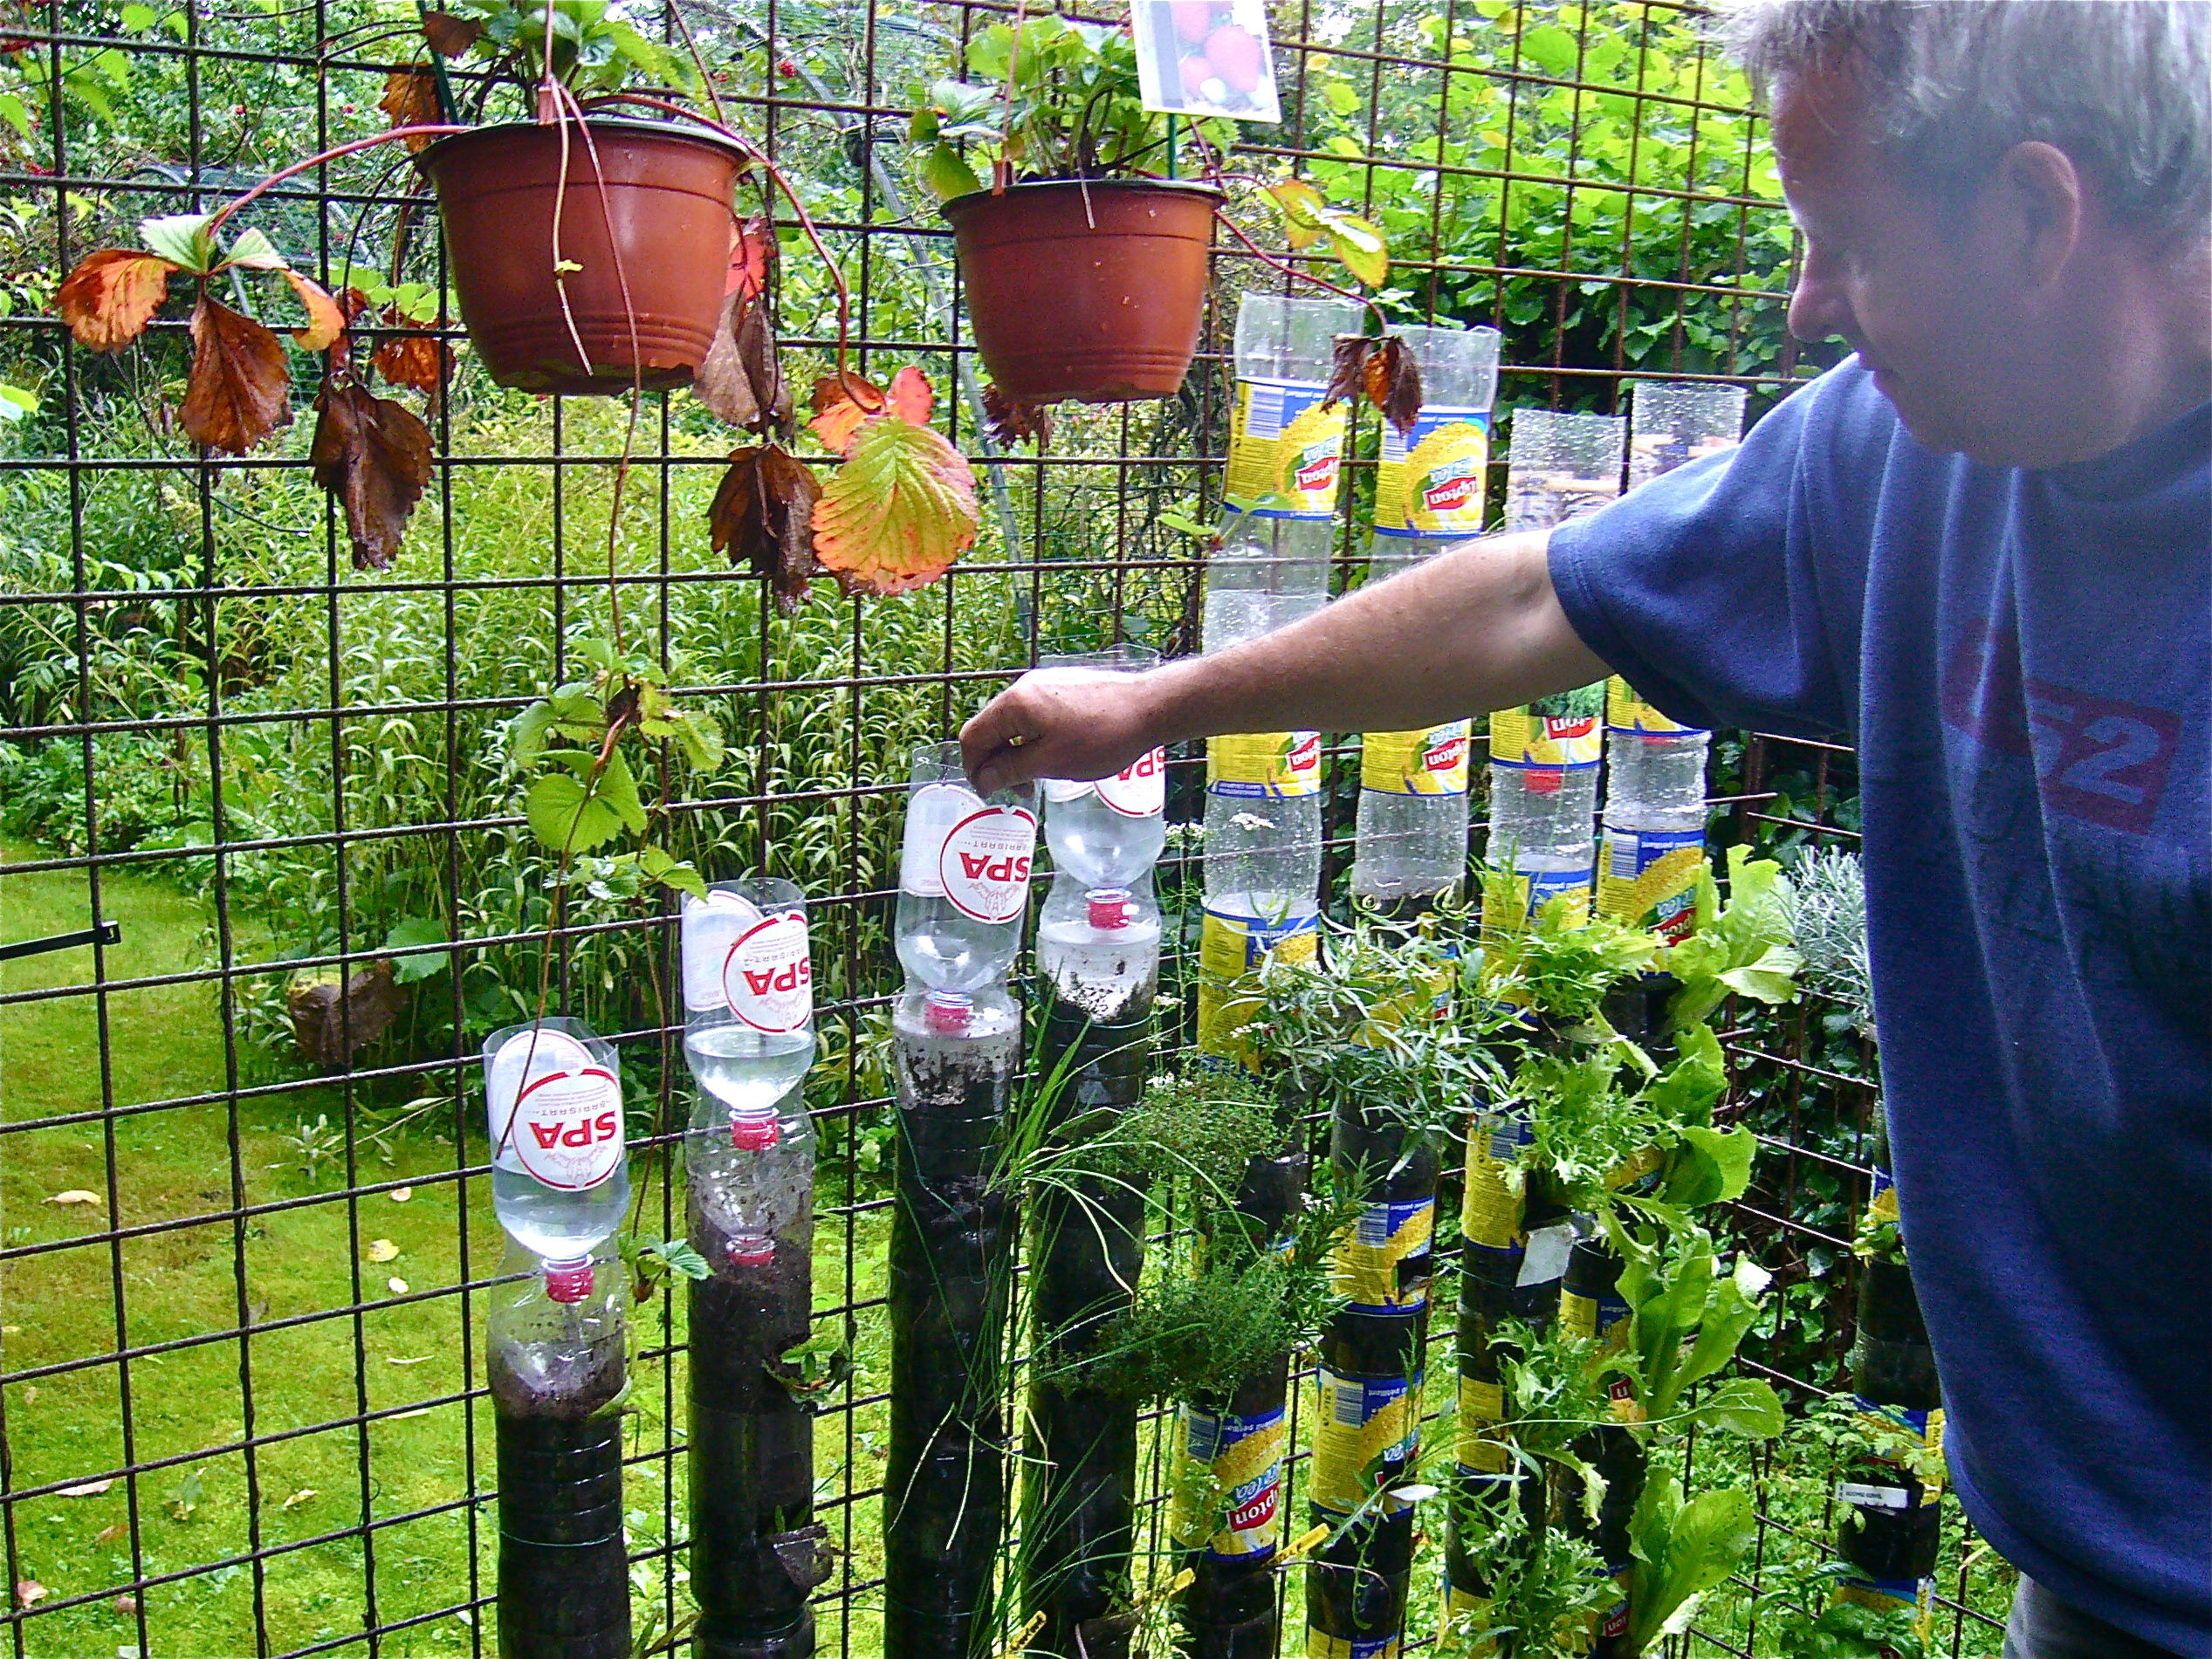 Showy Building A Bottle Tower How To Build A Bottle Tower Youtube Container Gardening Vegetables Youtube Container Gardening Container Gardening Combating Malnutrition garden You Tube Container Gardening